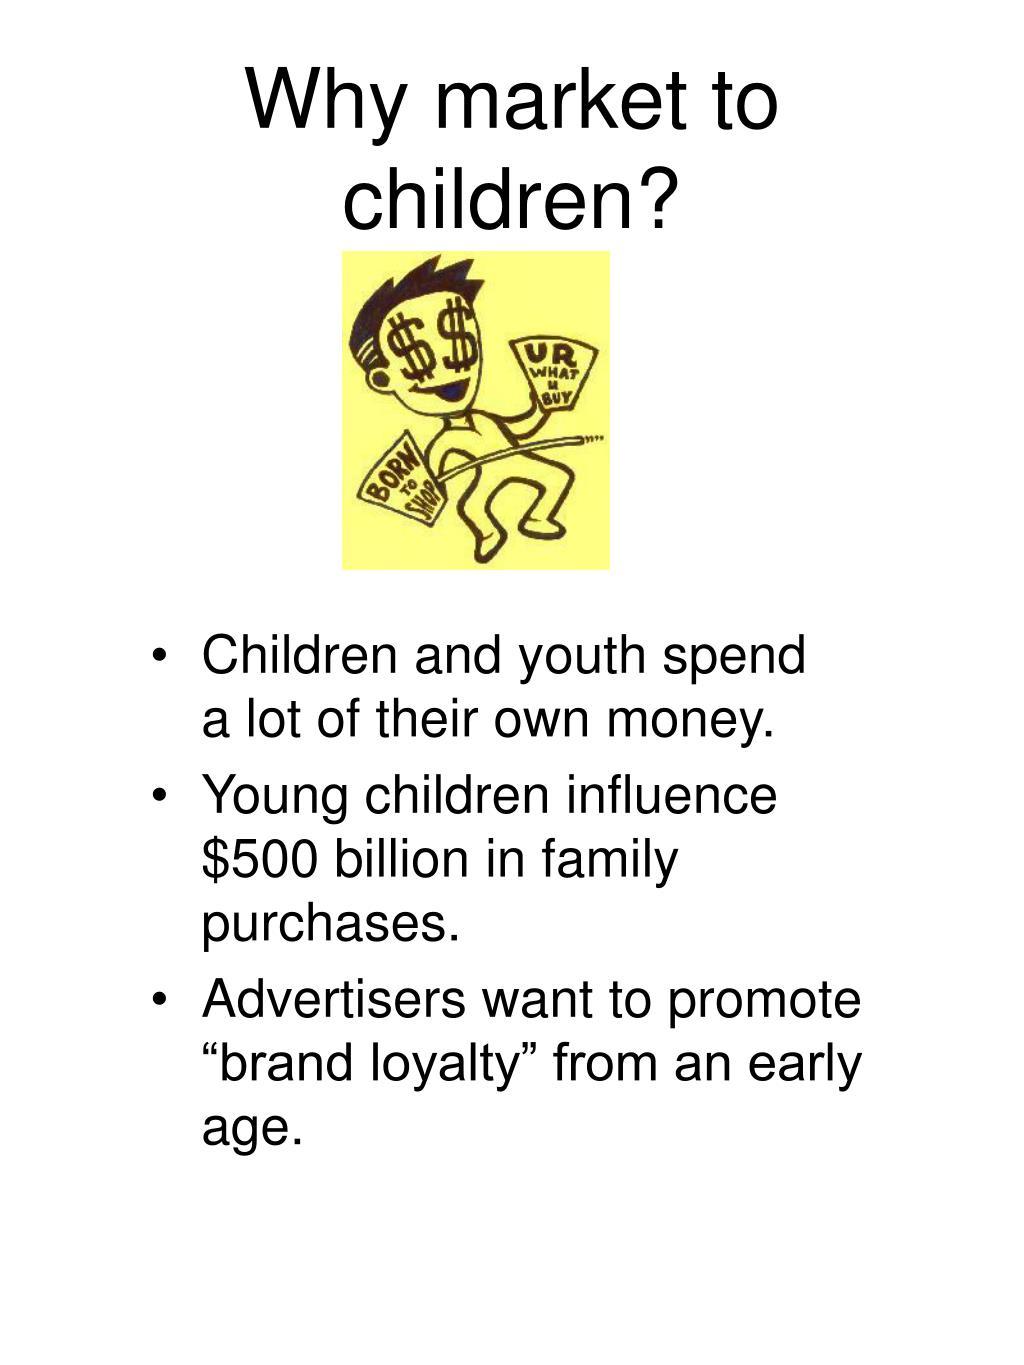 Why market to children?